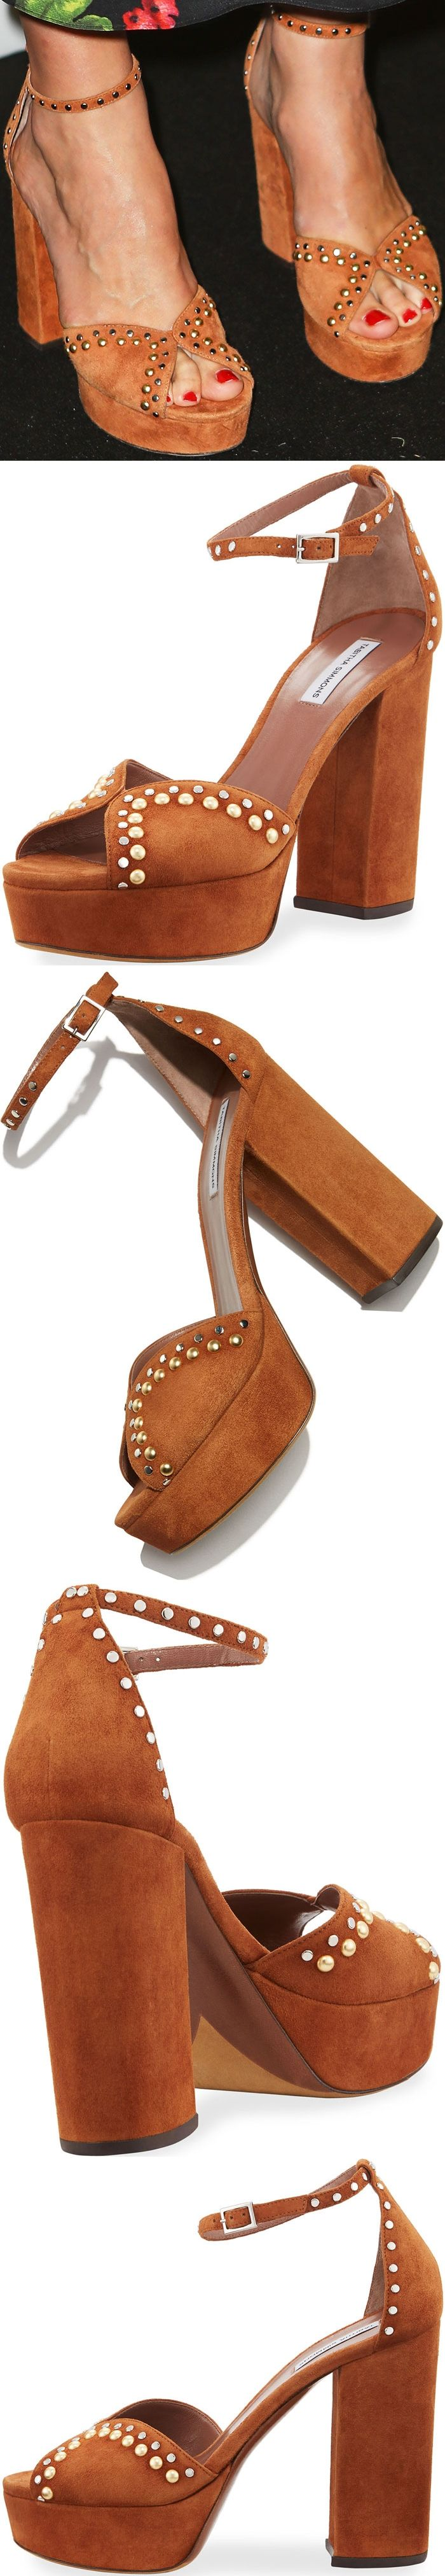 """Keira added a dash of quirkiness into the ensemble with a pair of studded Tabitha Simmons """"Julieta"""" sandals."""